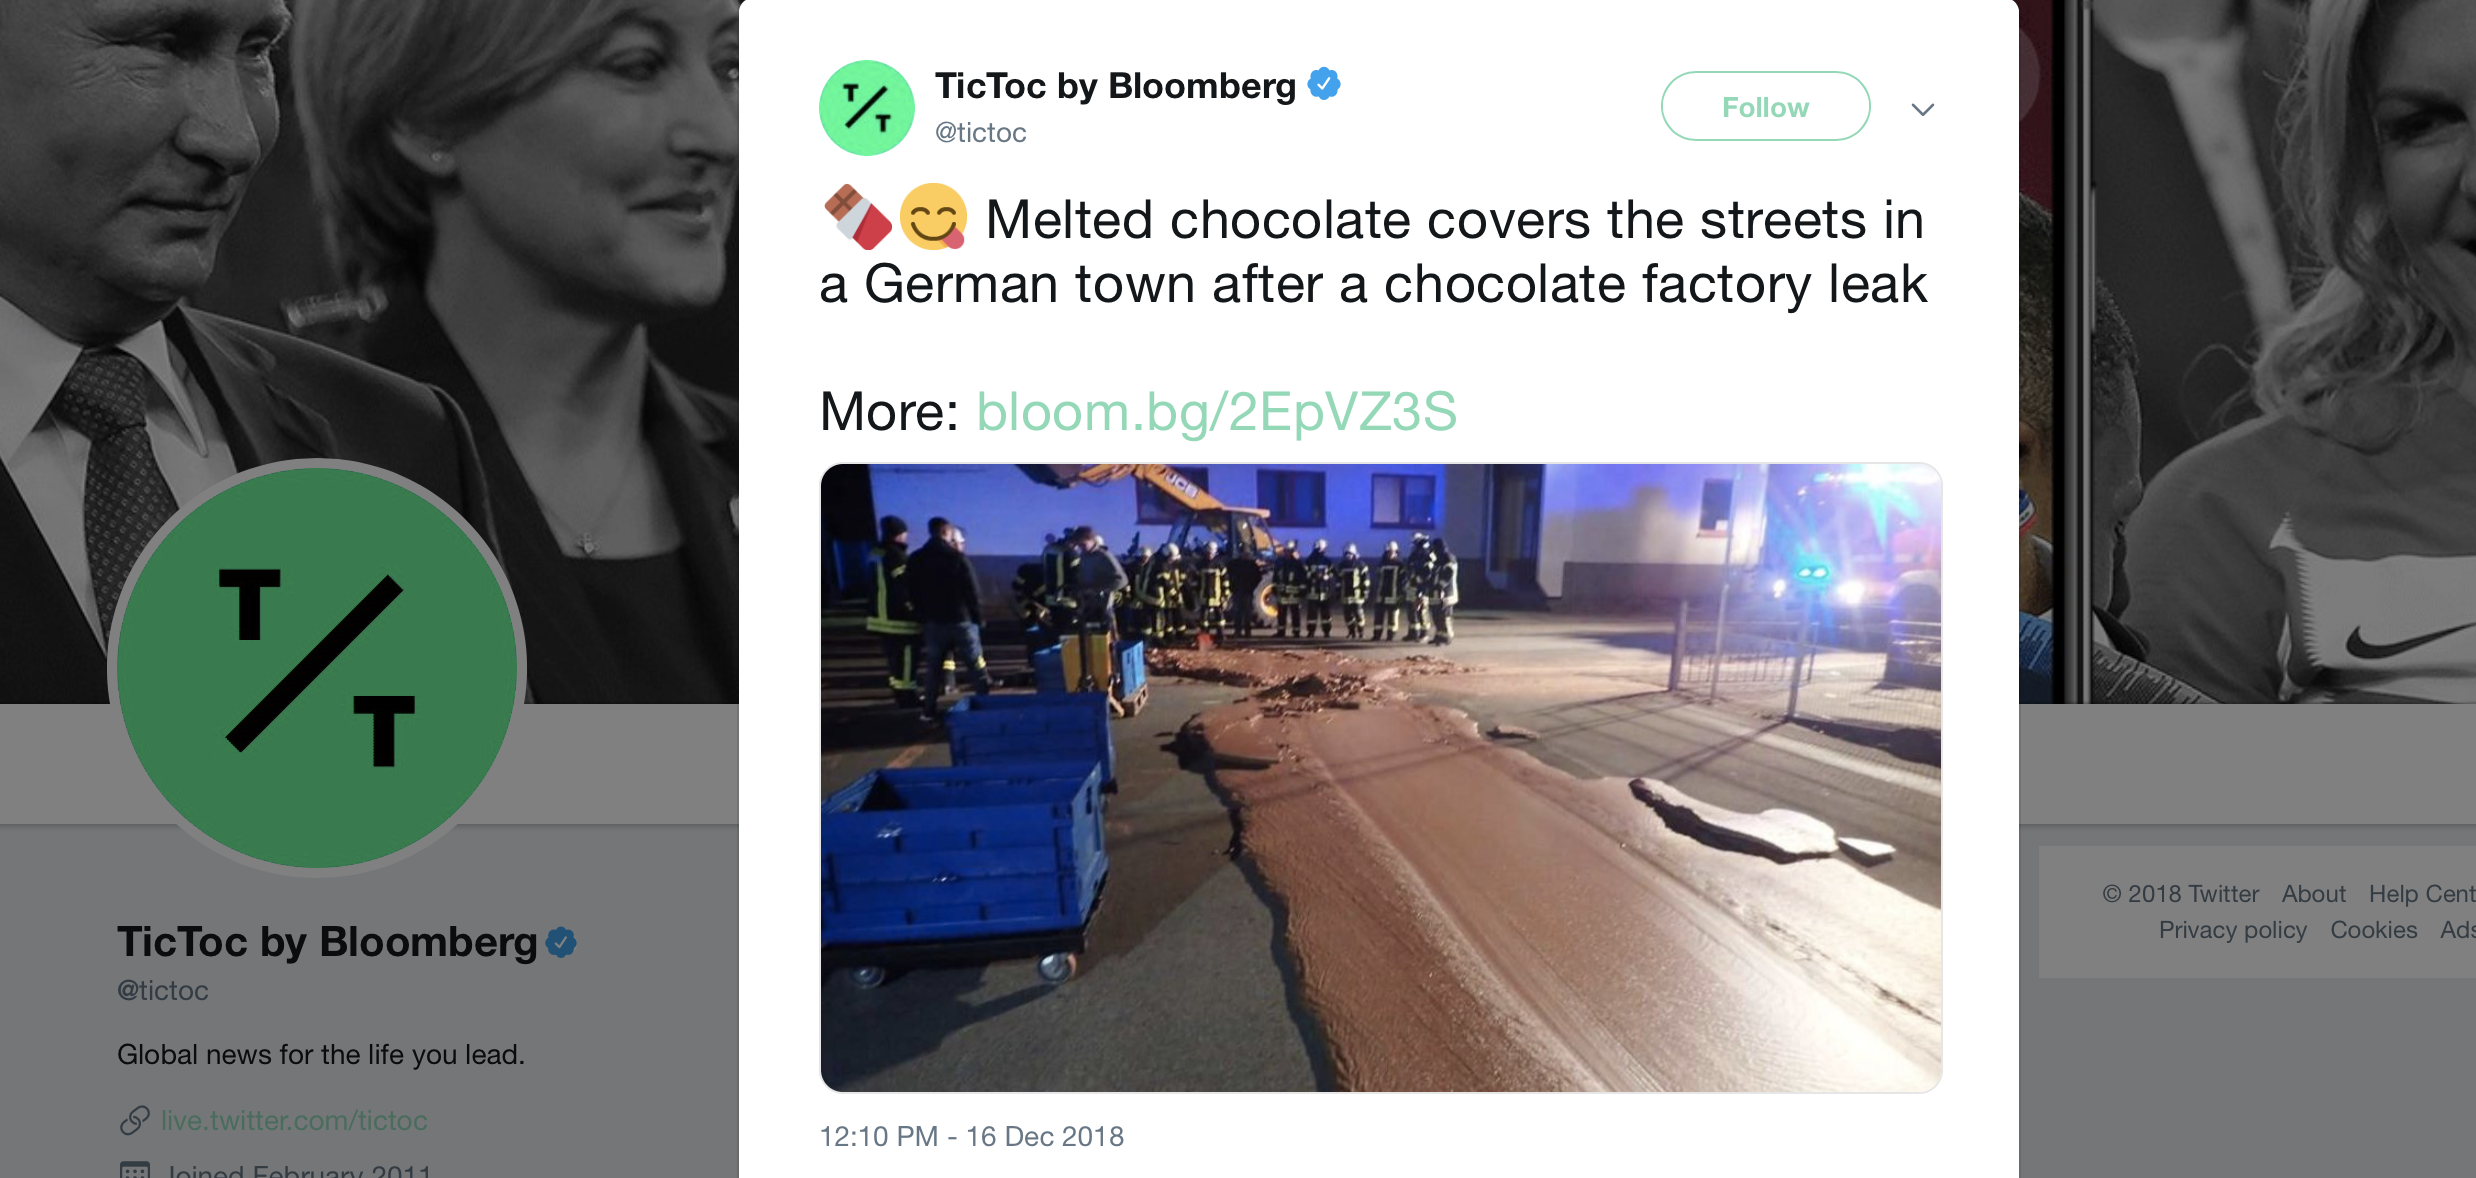 A tweet about chocolate leaking from a factory and pouring through the streets of a German town